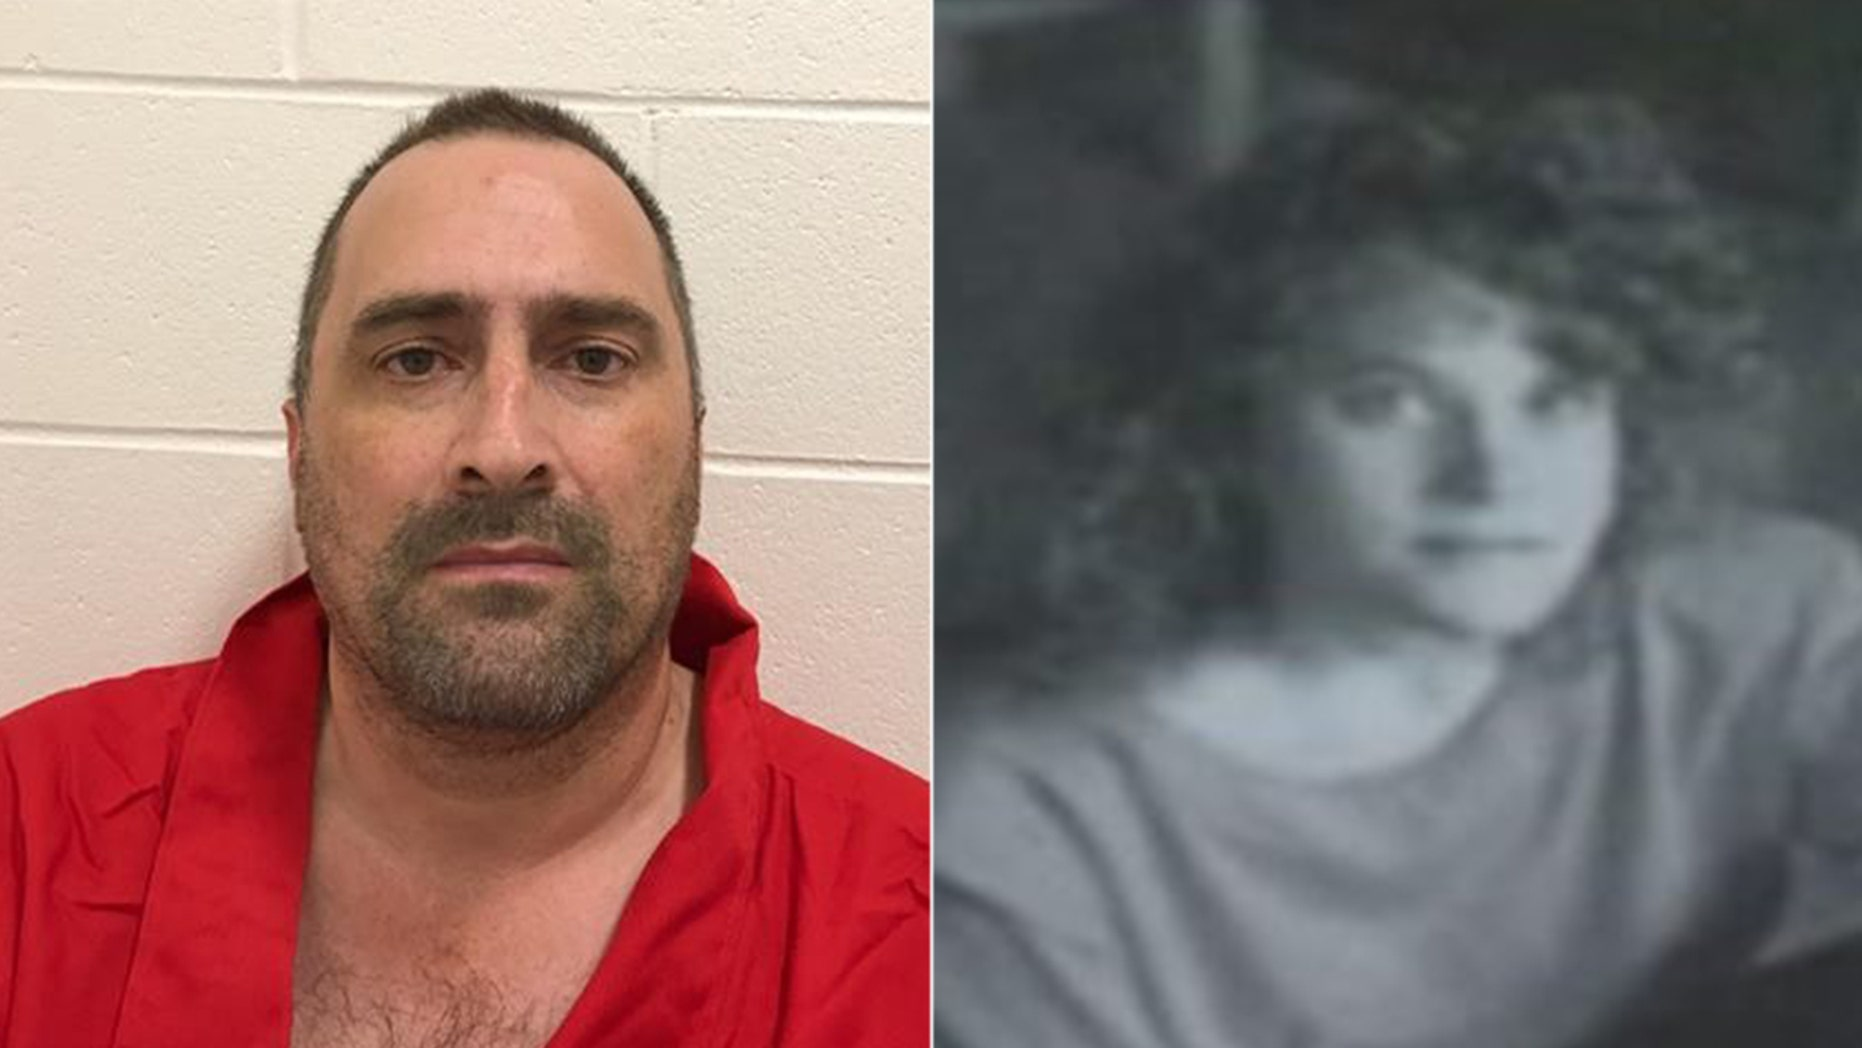 Gary E. Schara was arrested for the rape, kidnapping and murder of Lisa Ziegert, who first went missing in 1992. The case went unsolved for 25 years.